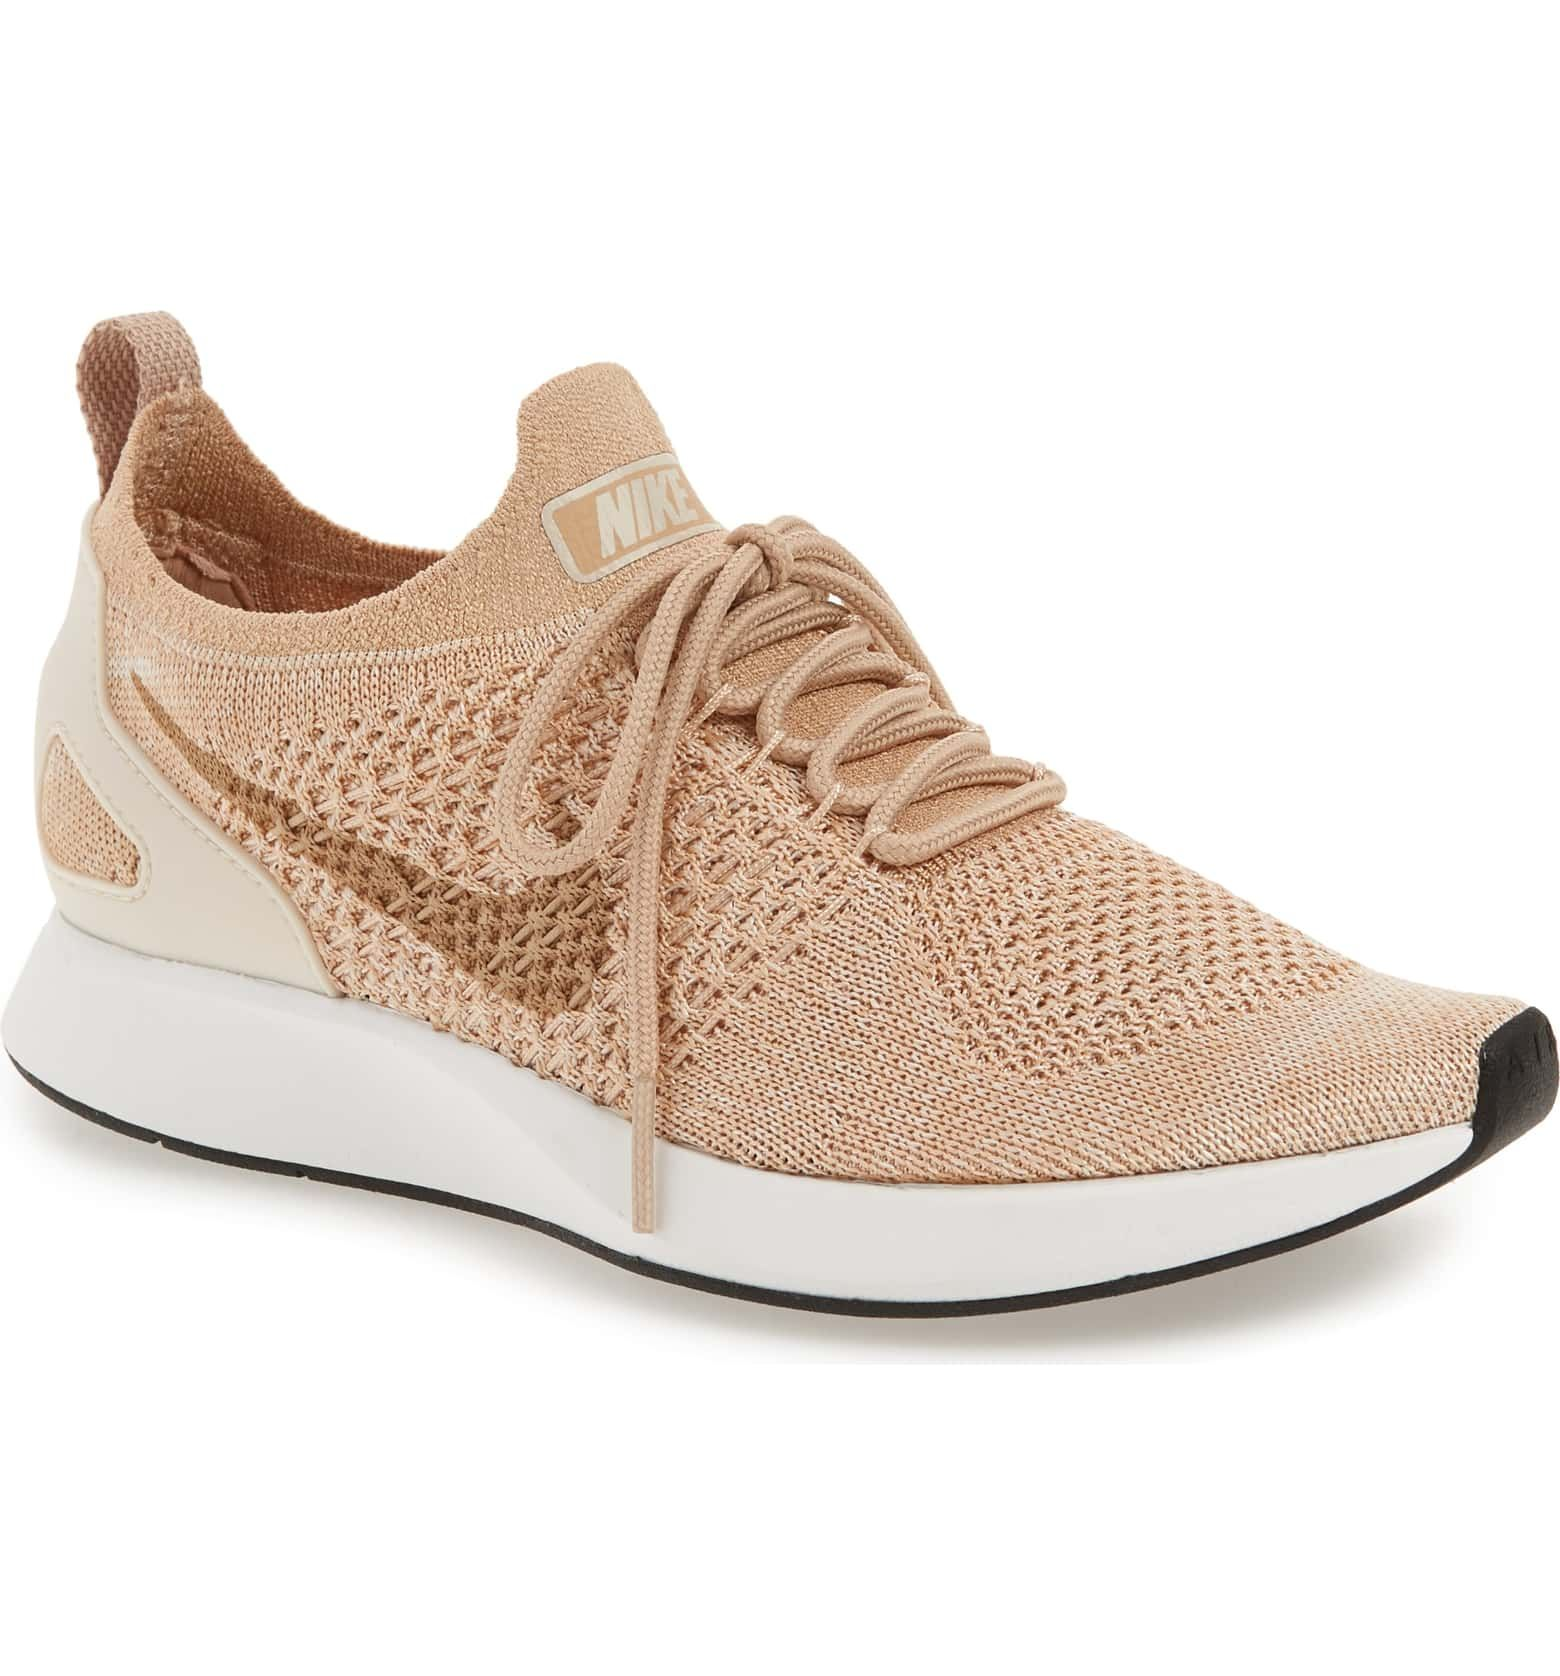 more photos 75030 17c84 Air Zoom Mariah Flyknit Racer Sneaker, Main, color, BIO BEIGE/ GUAVA ICE